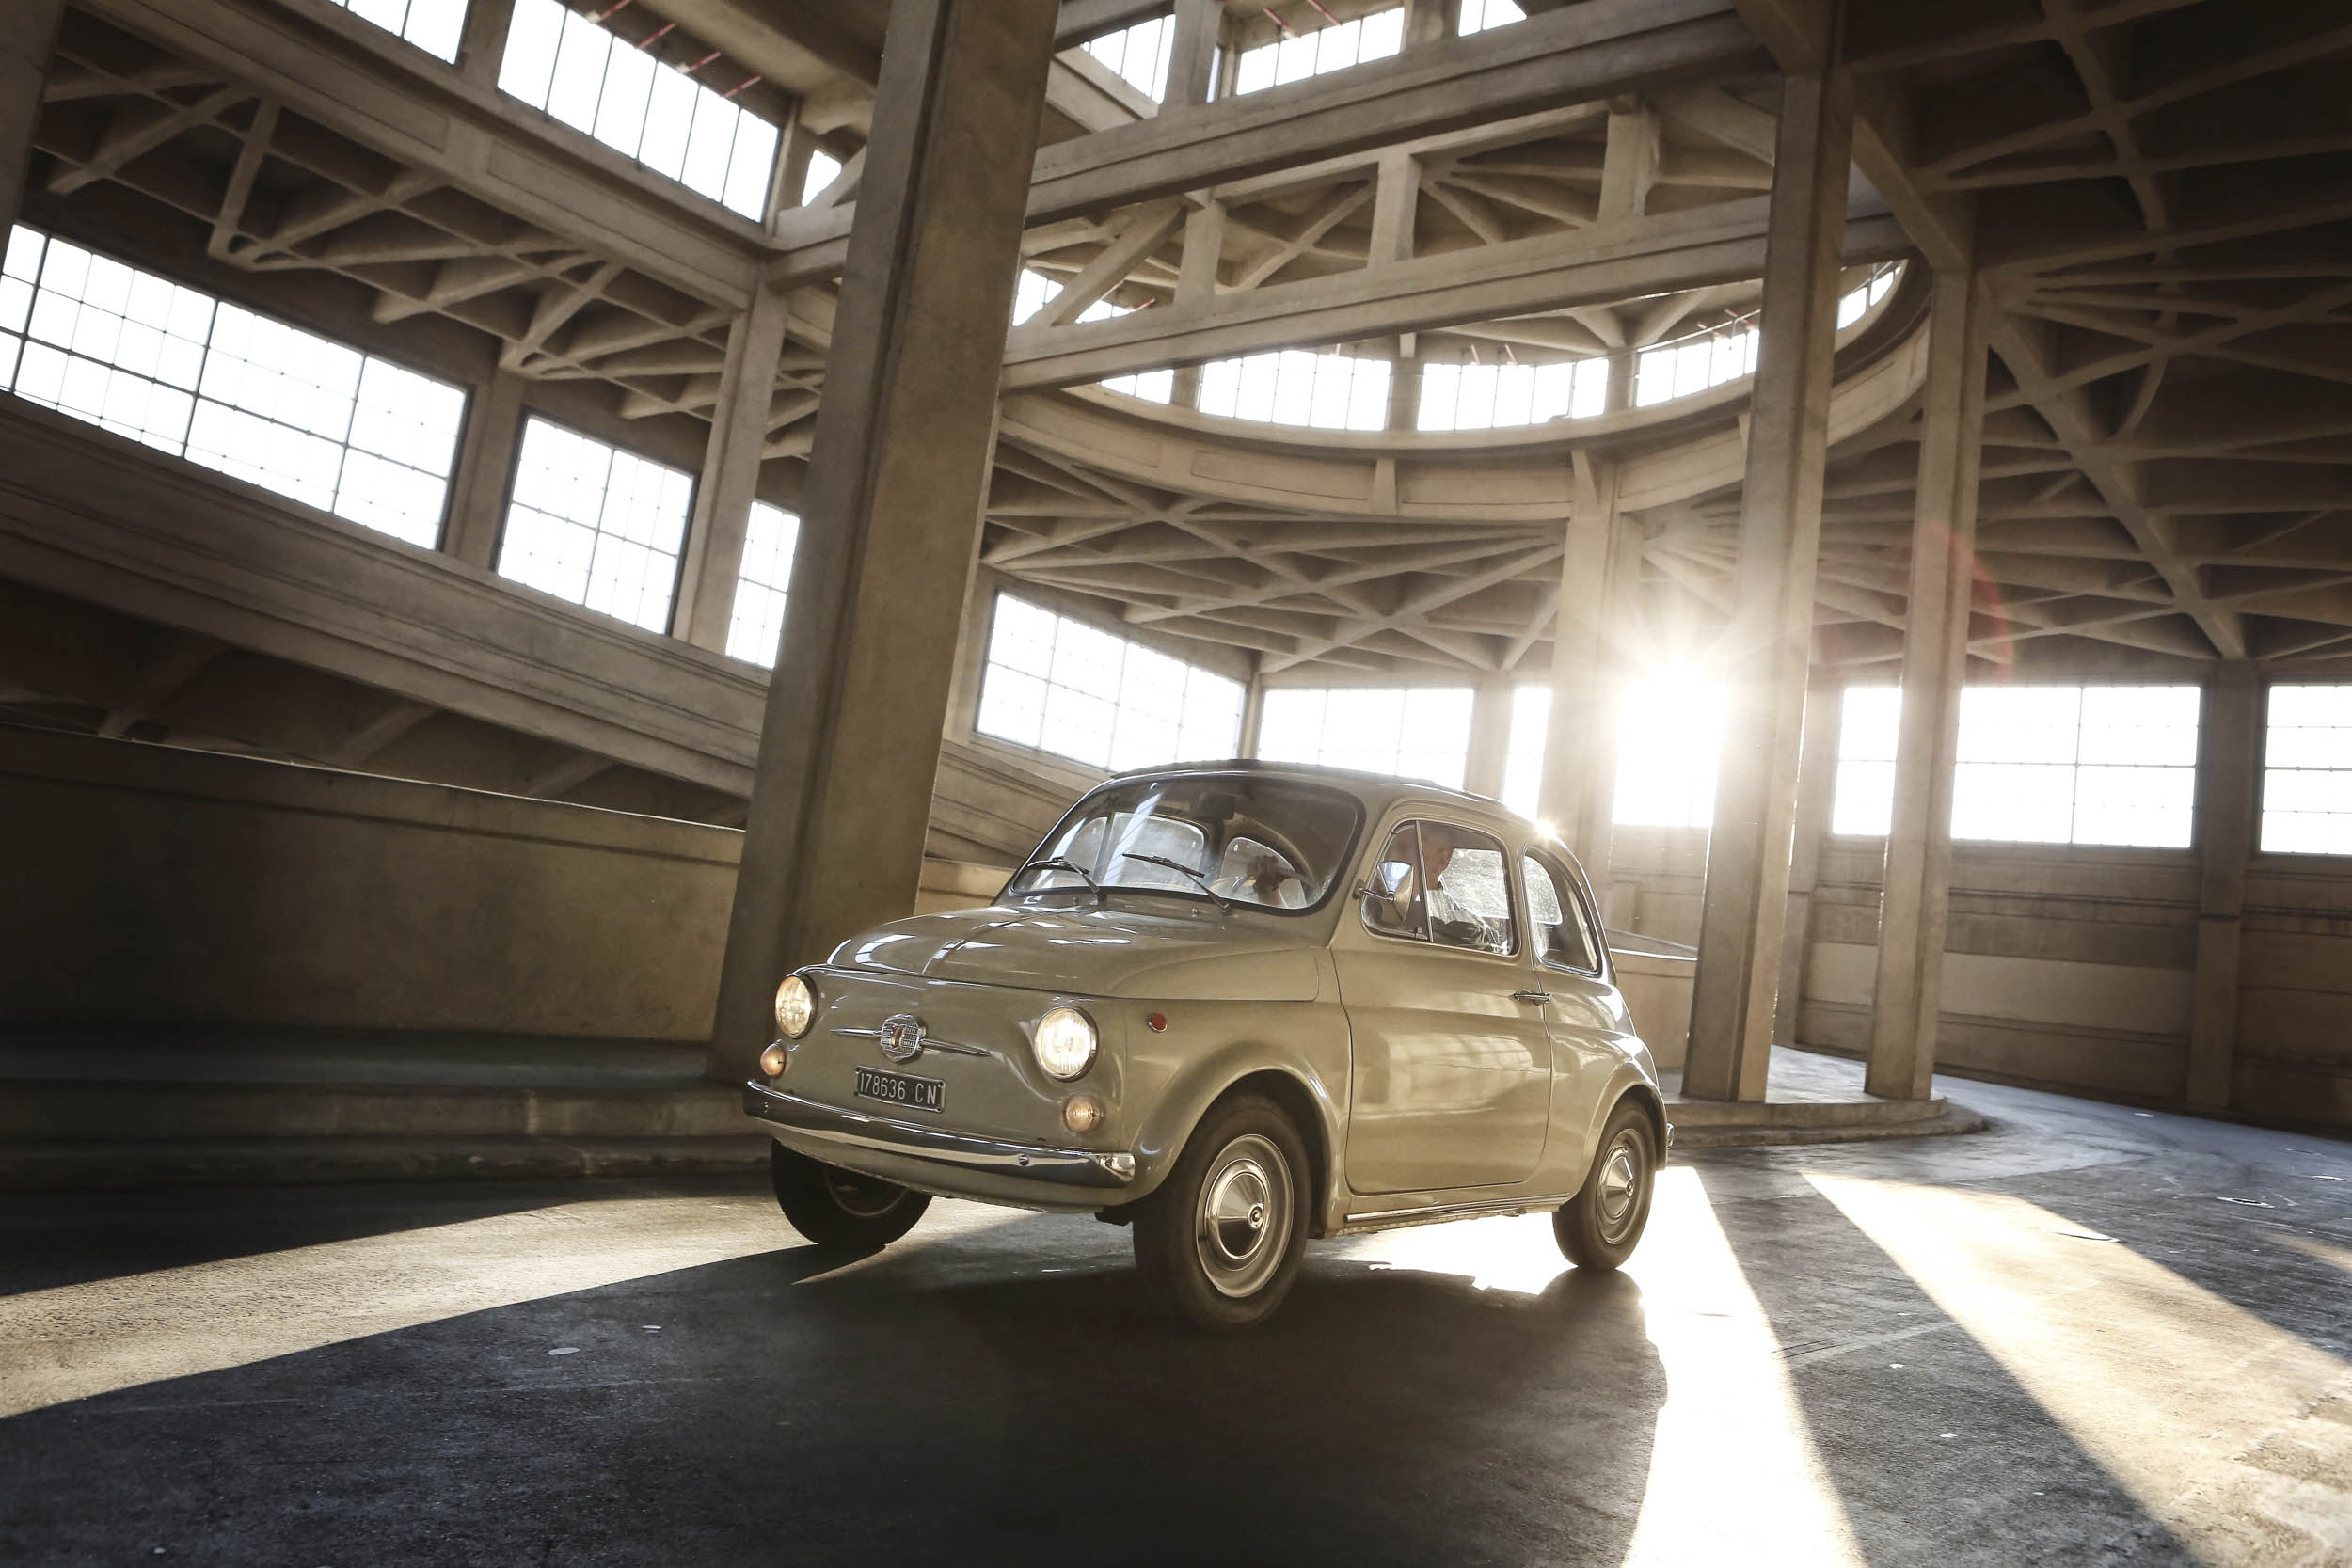 FIAT 500 F in a parking structure